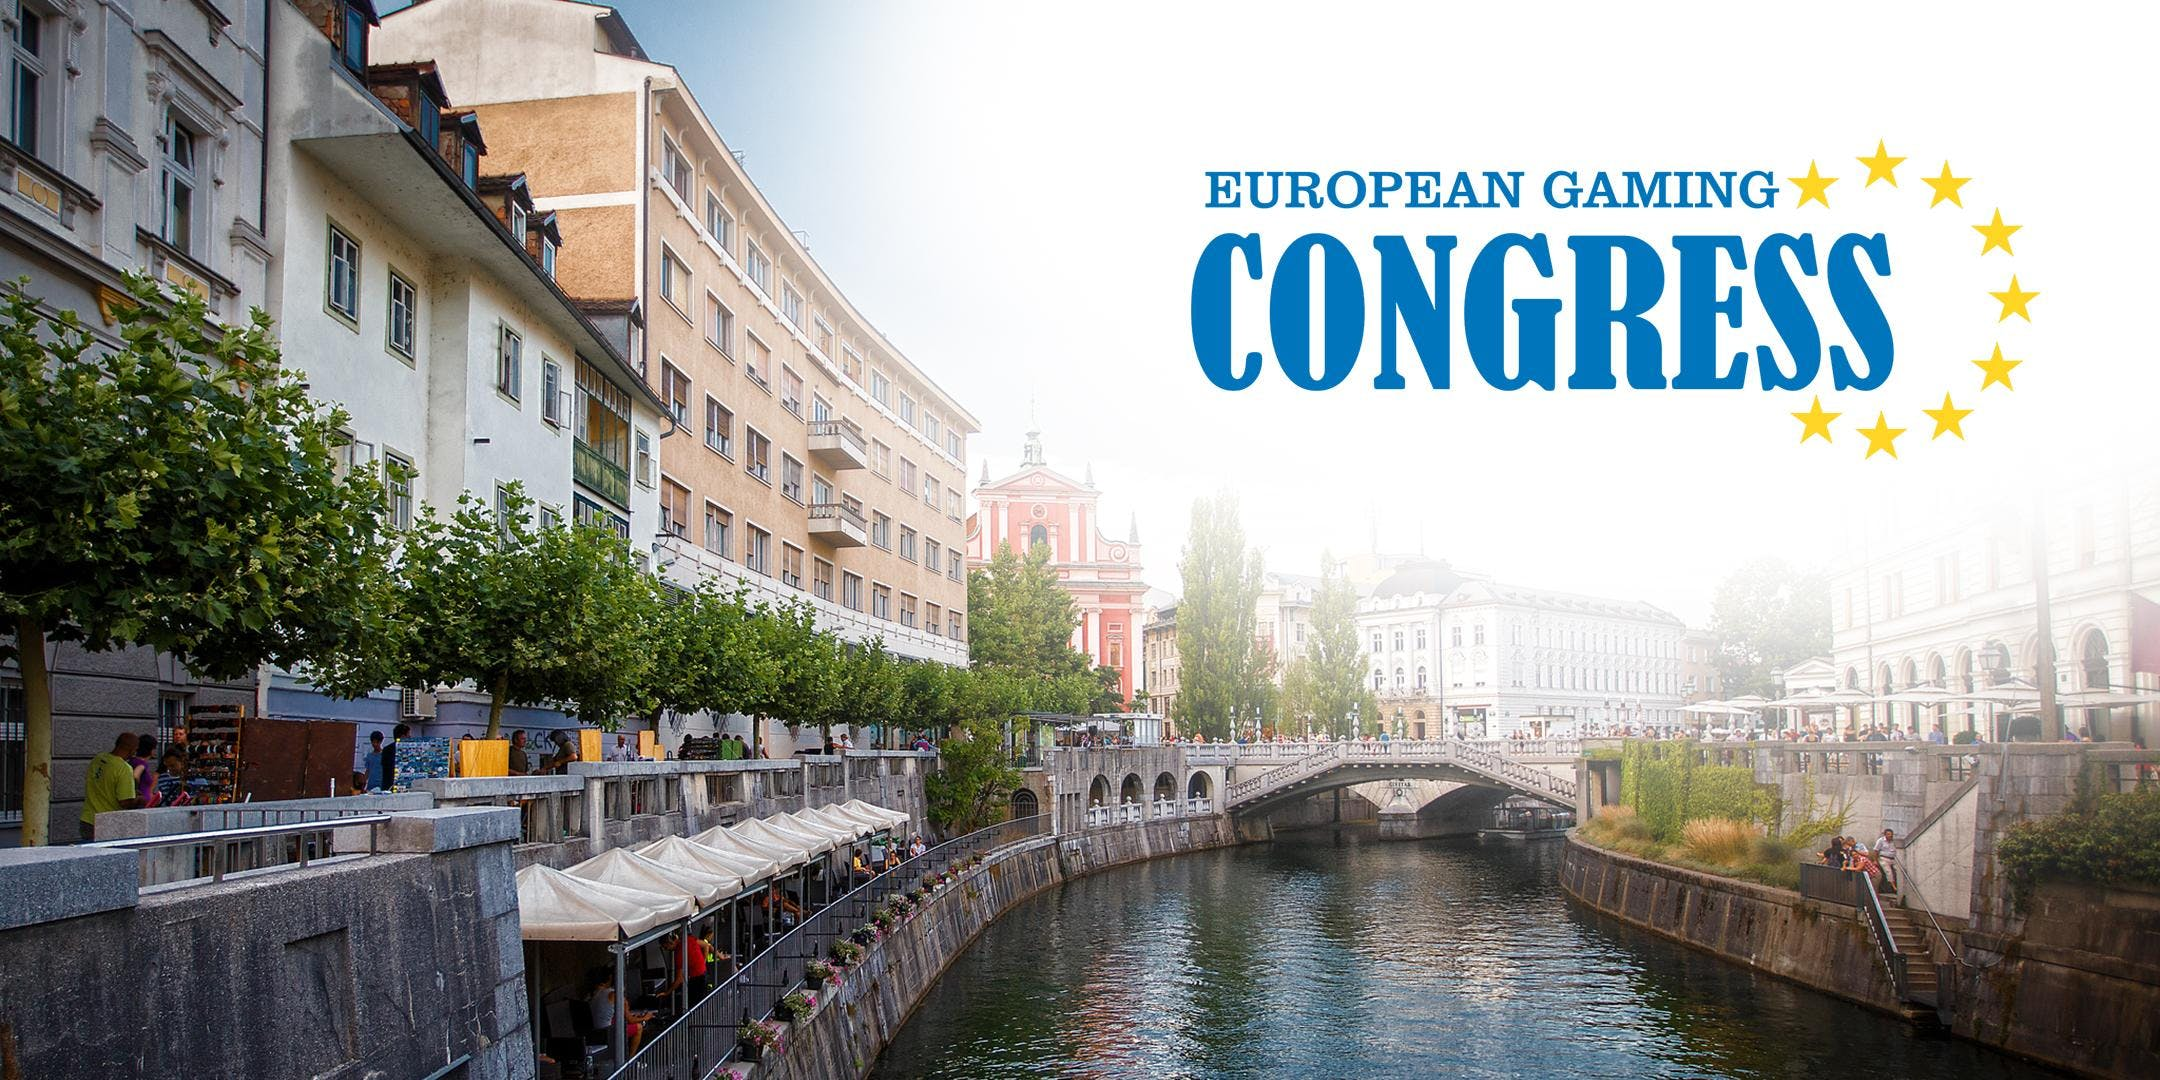 European Gaming Congress 2018